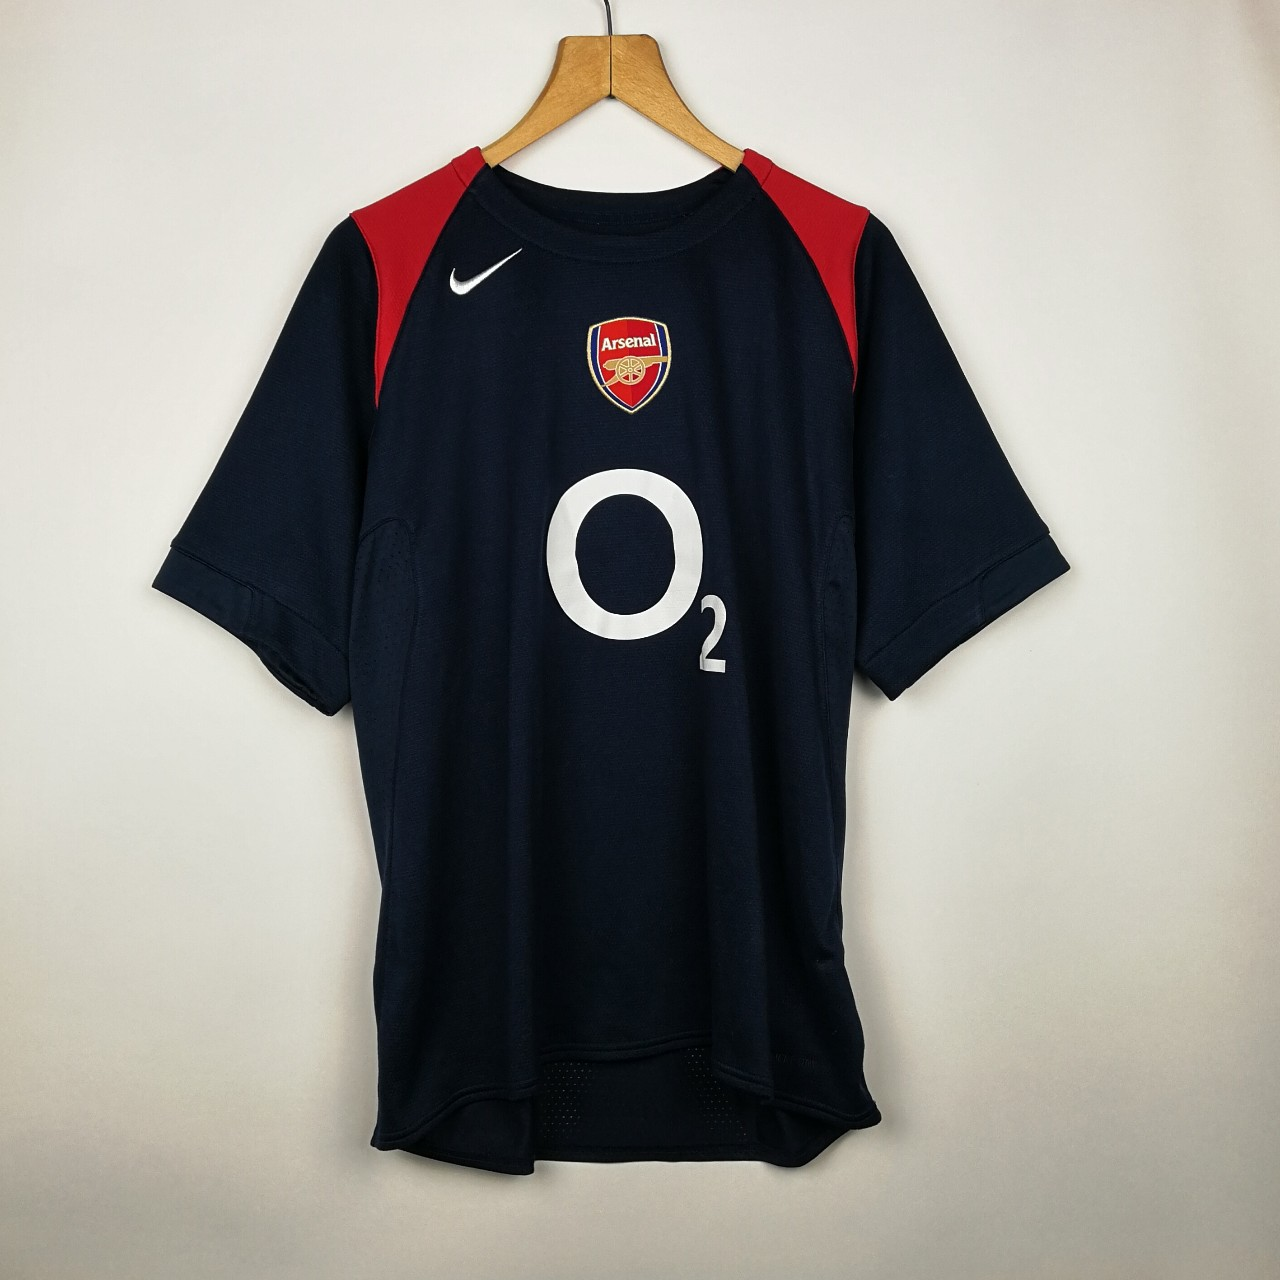 detailed look 2ddfc 8b536 VINTAGE OVERSIZED NAVY BLUE & RED NIKE X ARSENAL ...